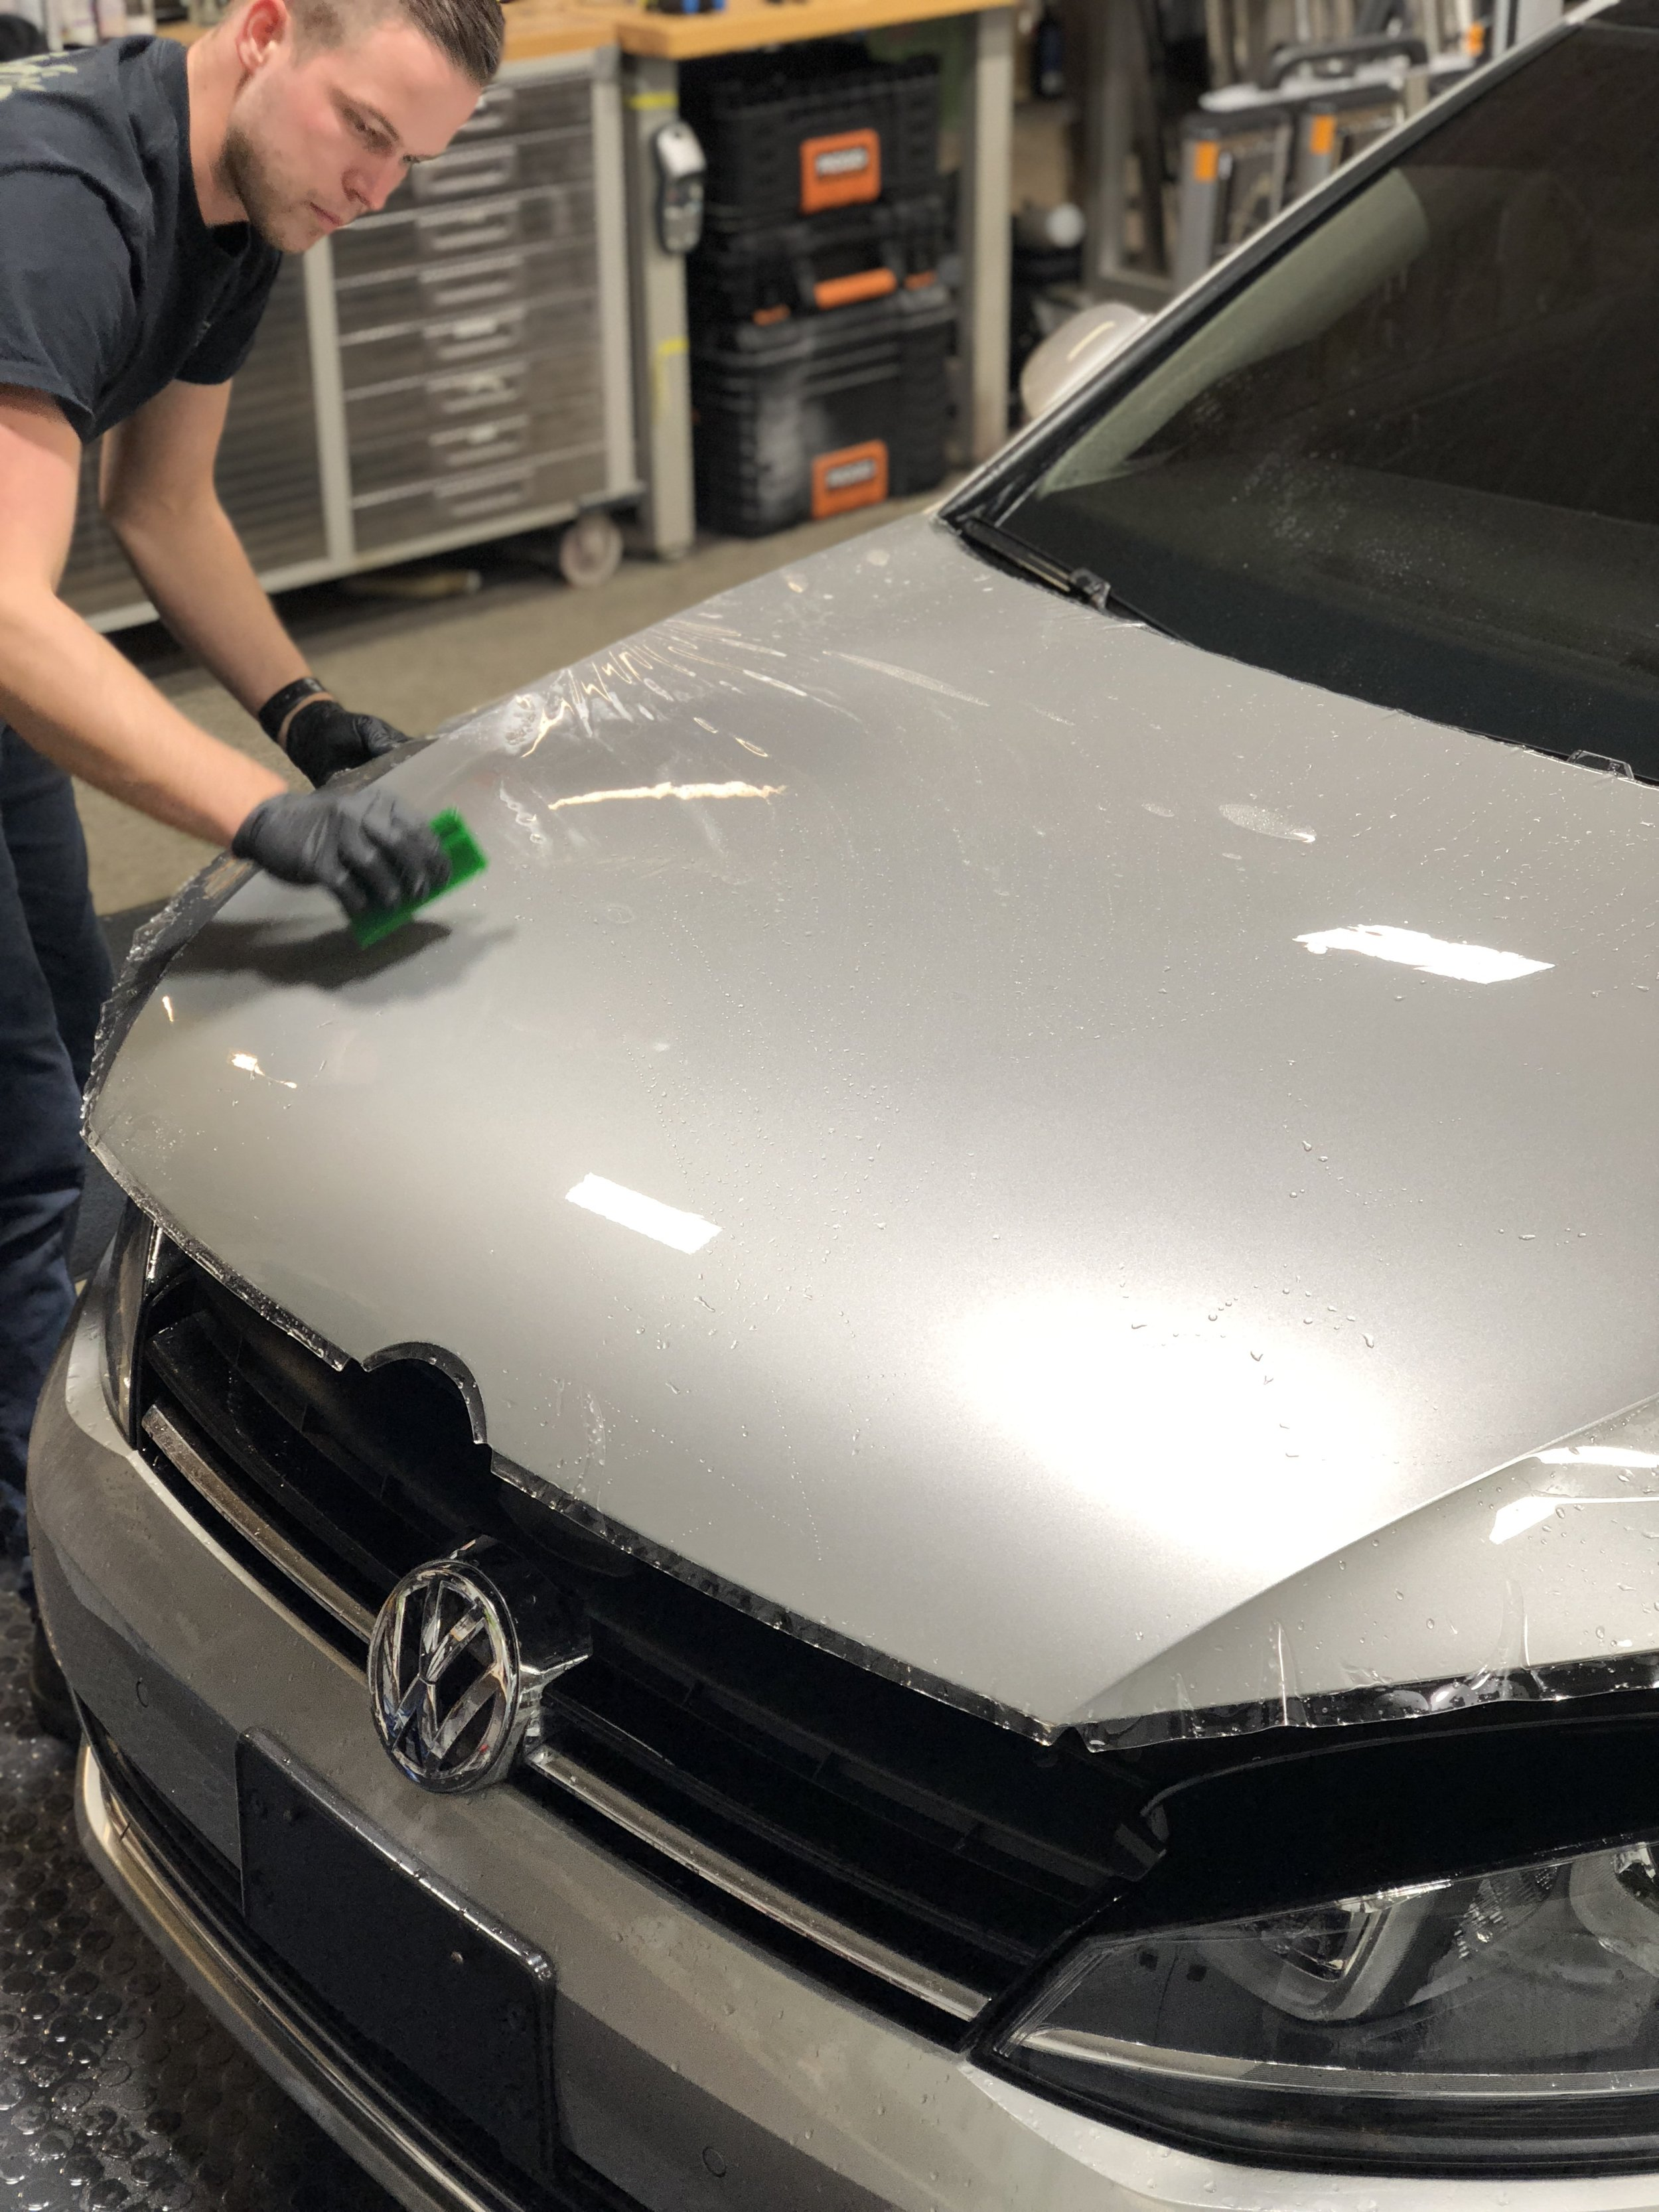 Installer using squeegee to remove installation solution under neath the film - this bonds the film to the body panel.